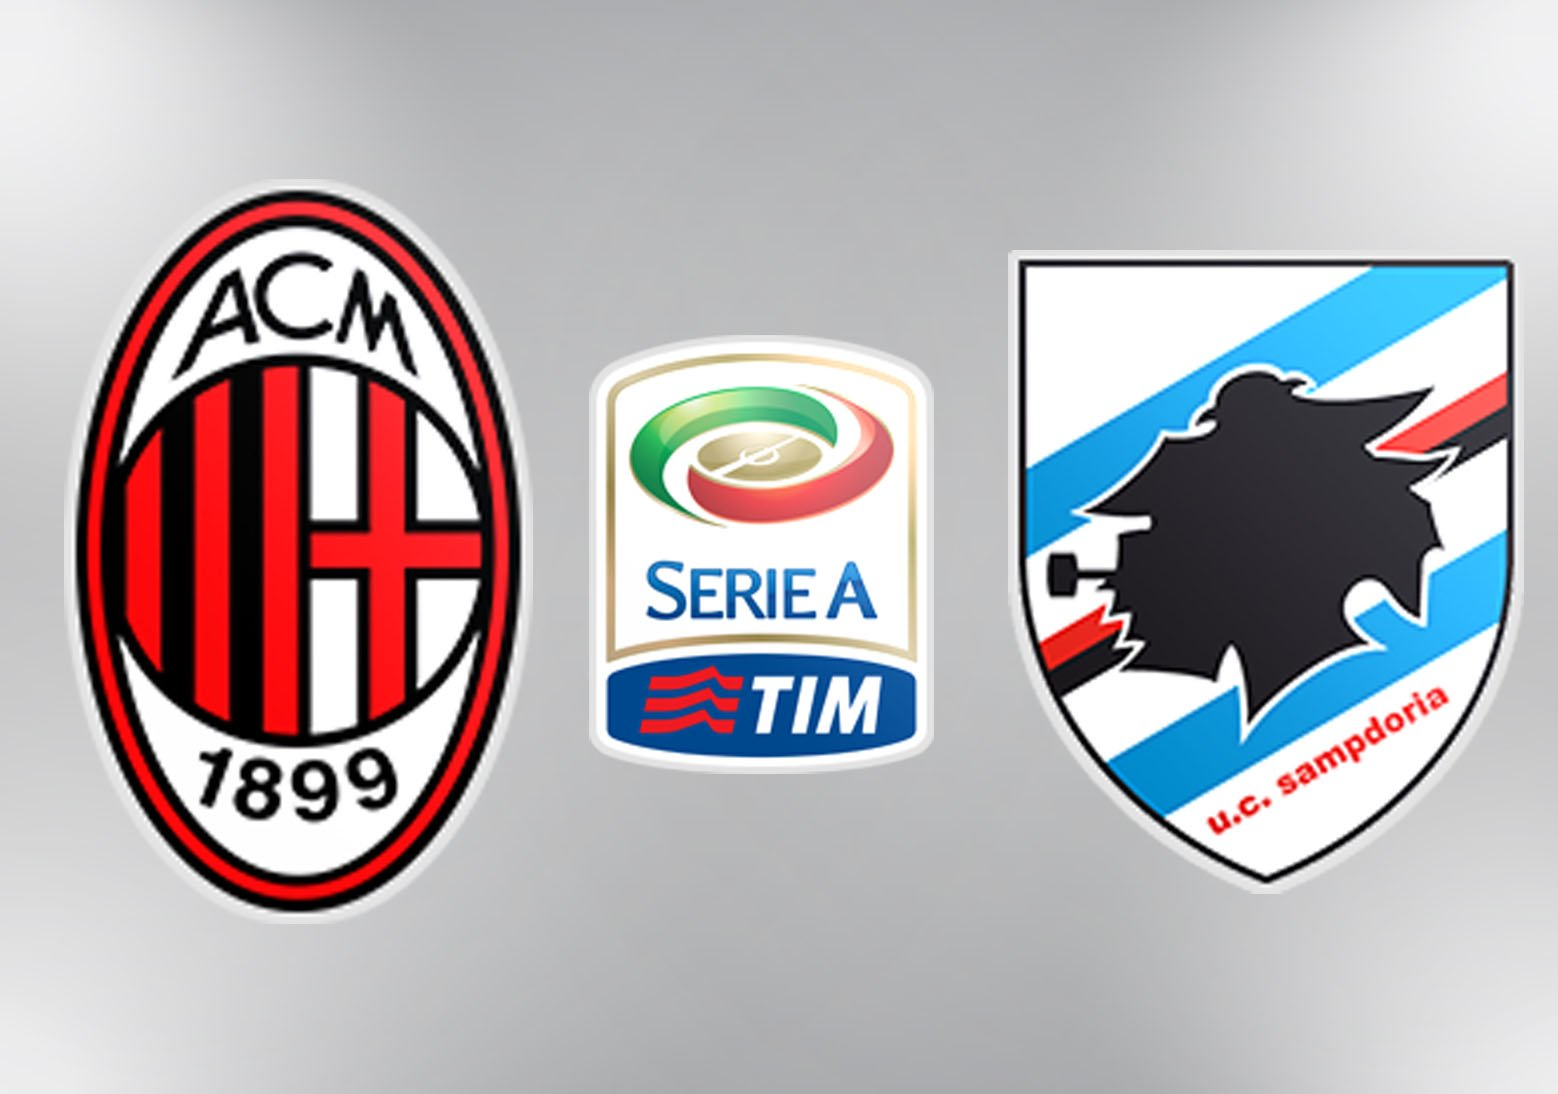 AC Milan Vs Sampdoria head to head